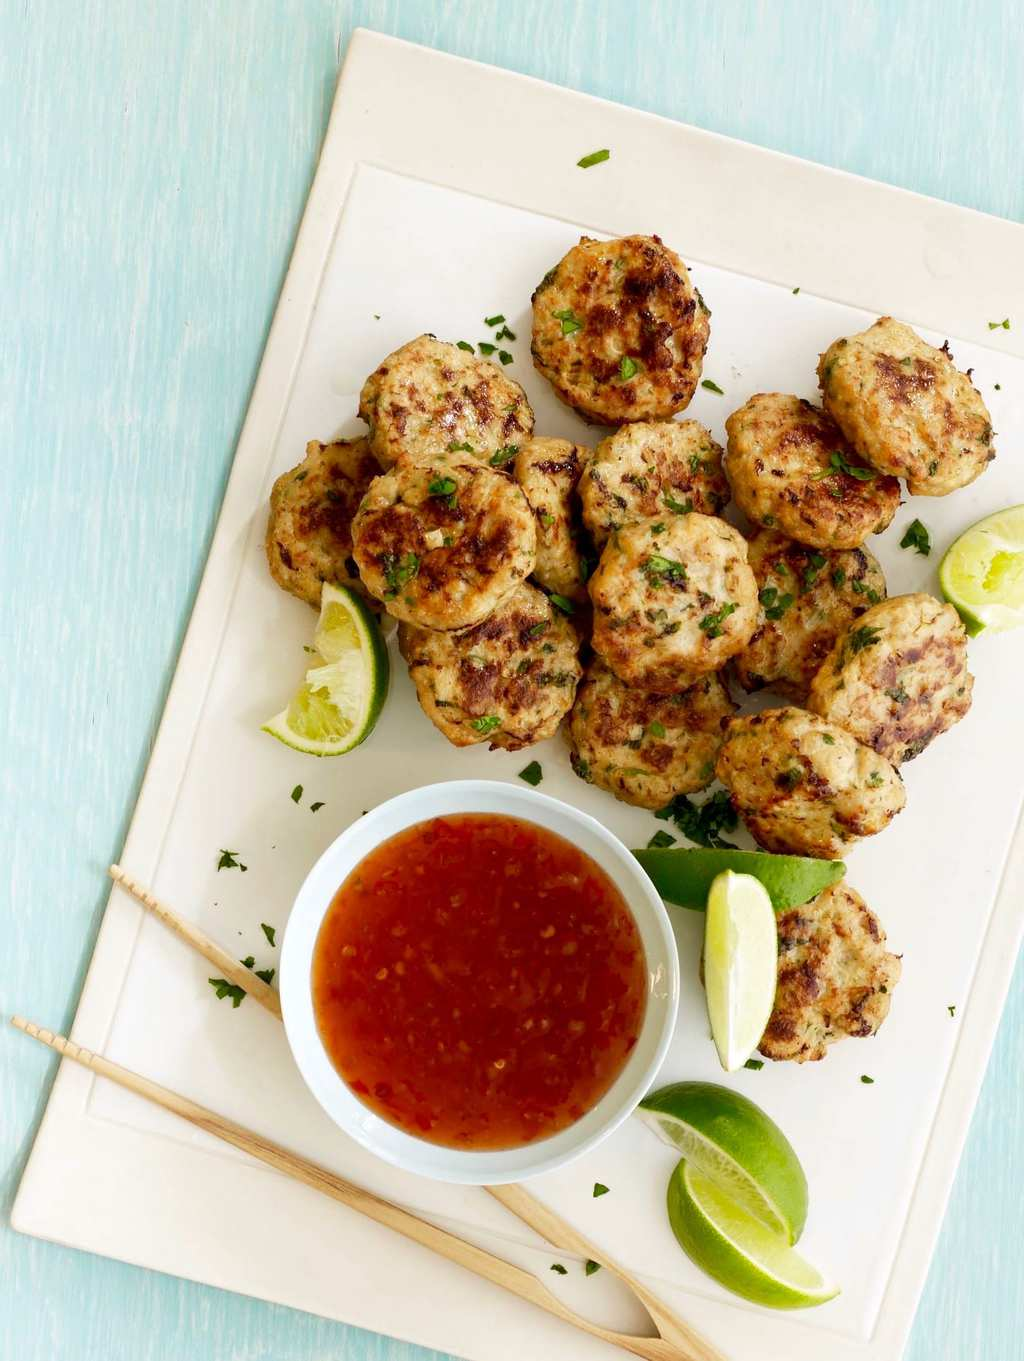 Ginger Thai Chicken Patties with sauce, limes and chopsticks overhead on white try and green background